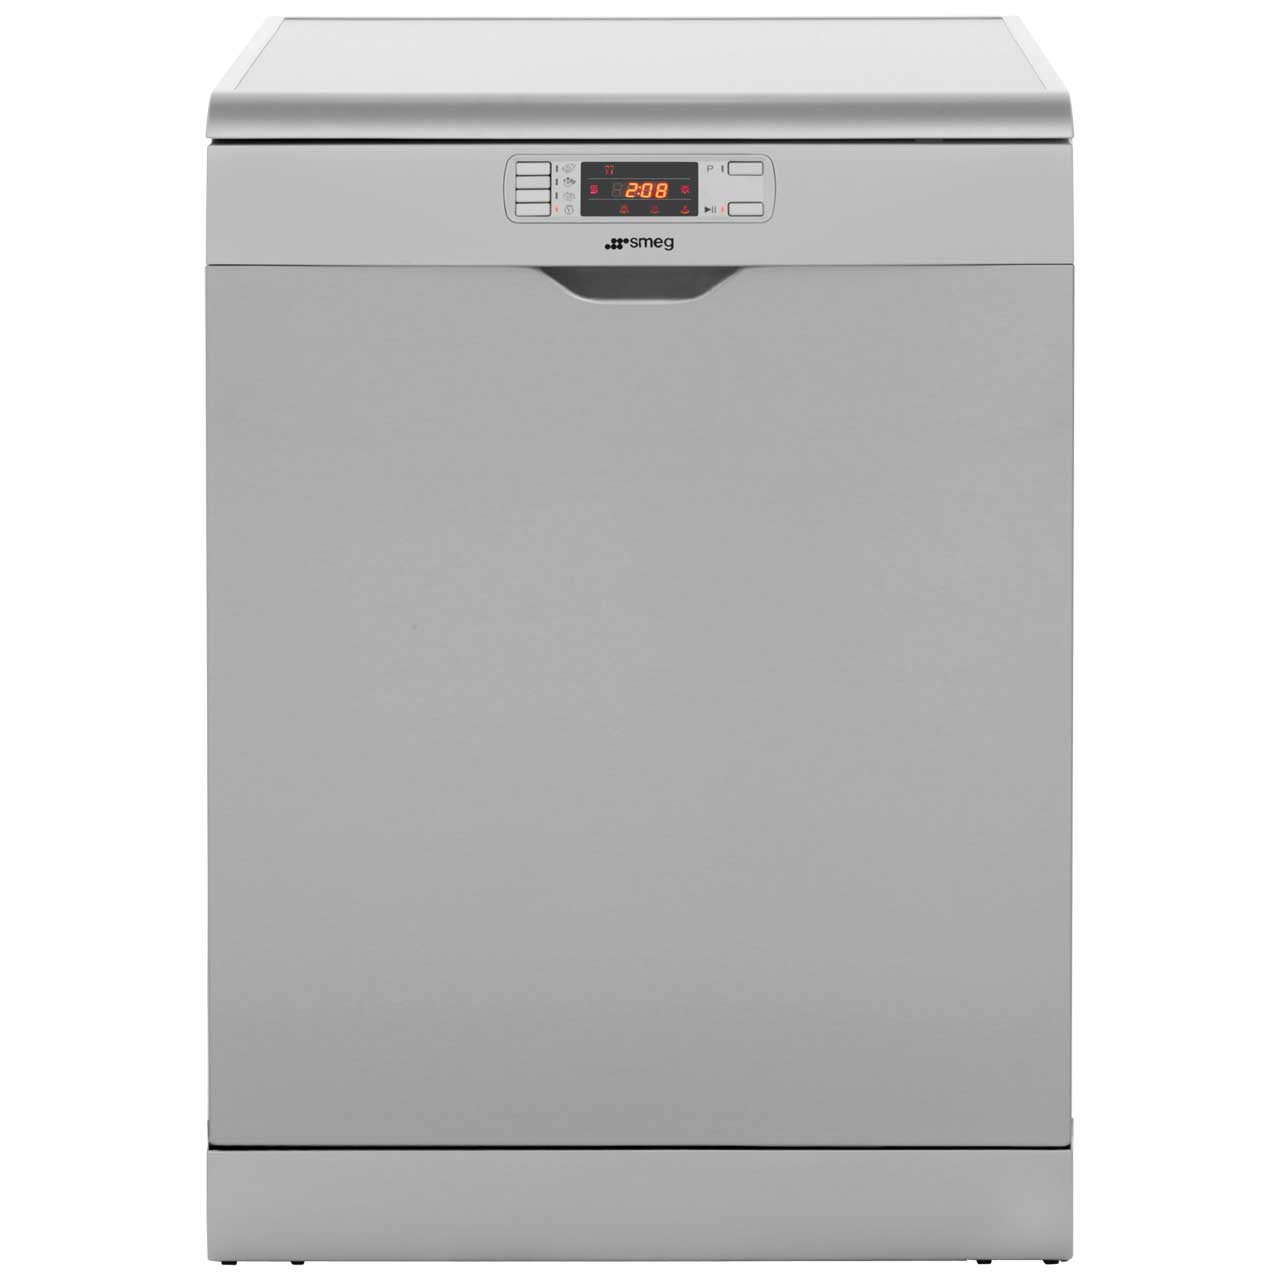 Smeg DC134LSS Standard Dishwasher - Silver / Stainless Steel